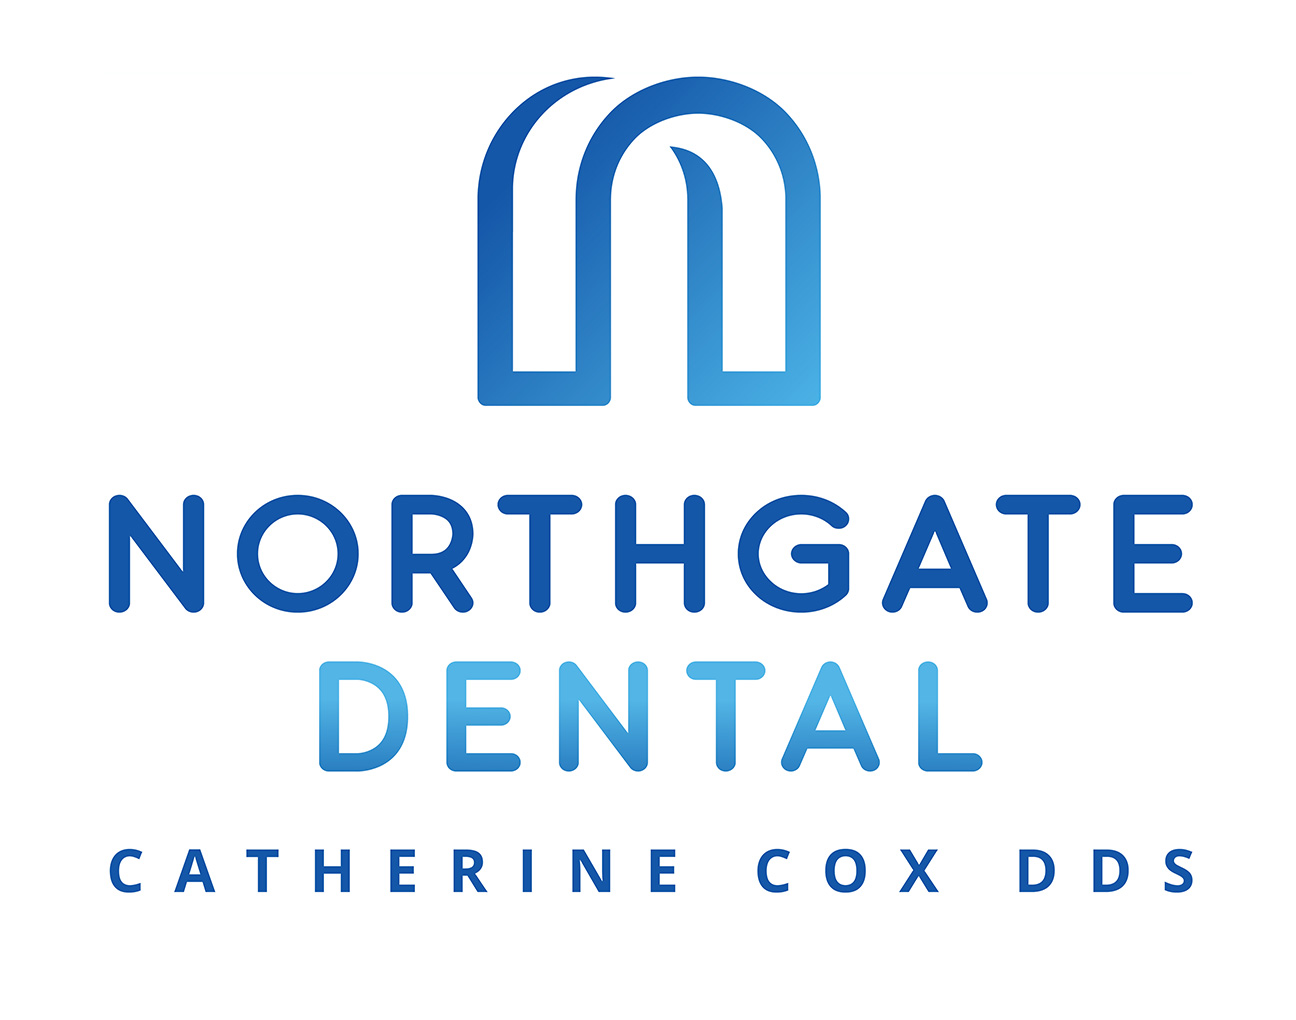 The New Logo Brand for Northgate Dental - - The office of Dr. Catherine Cox DDS